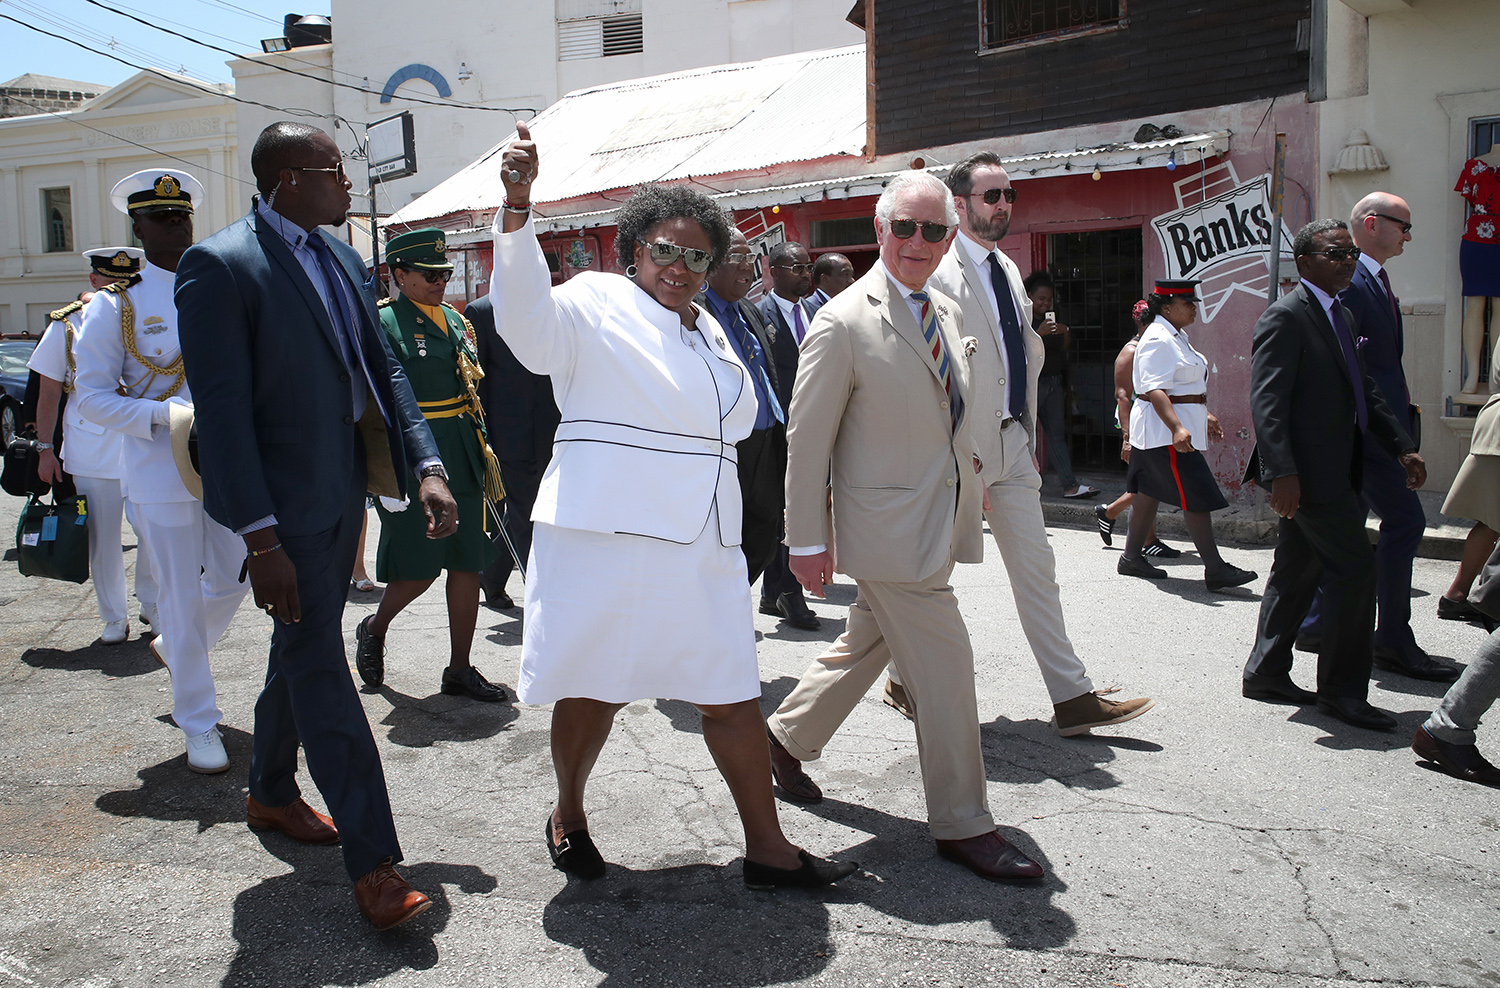 Barbados Prime Minister Mia Mottley gives a tour to Charles, the Prince of Wales